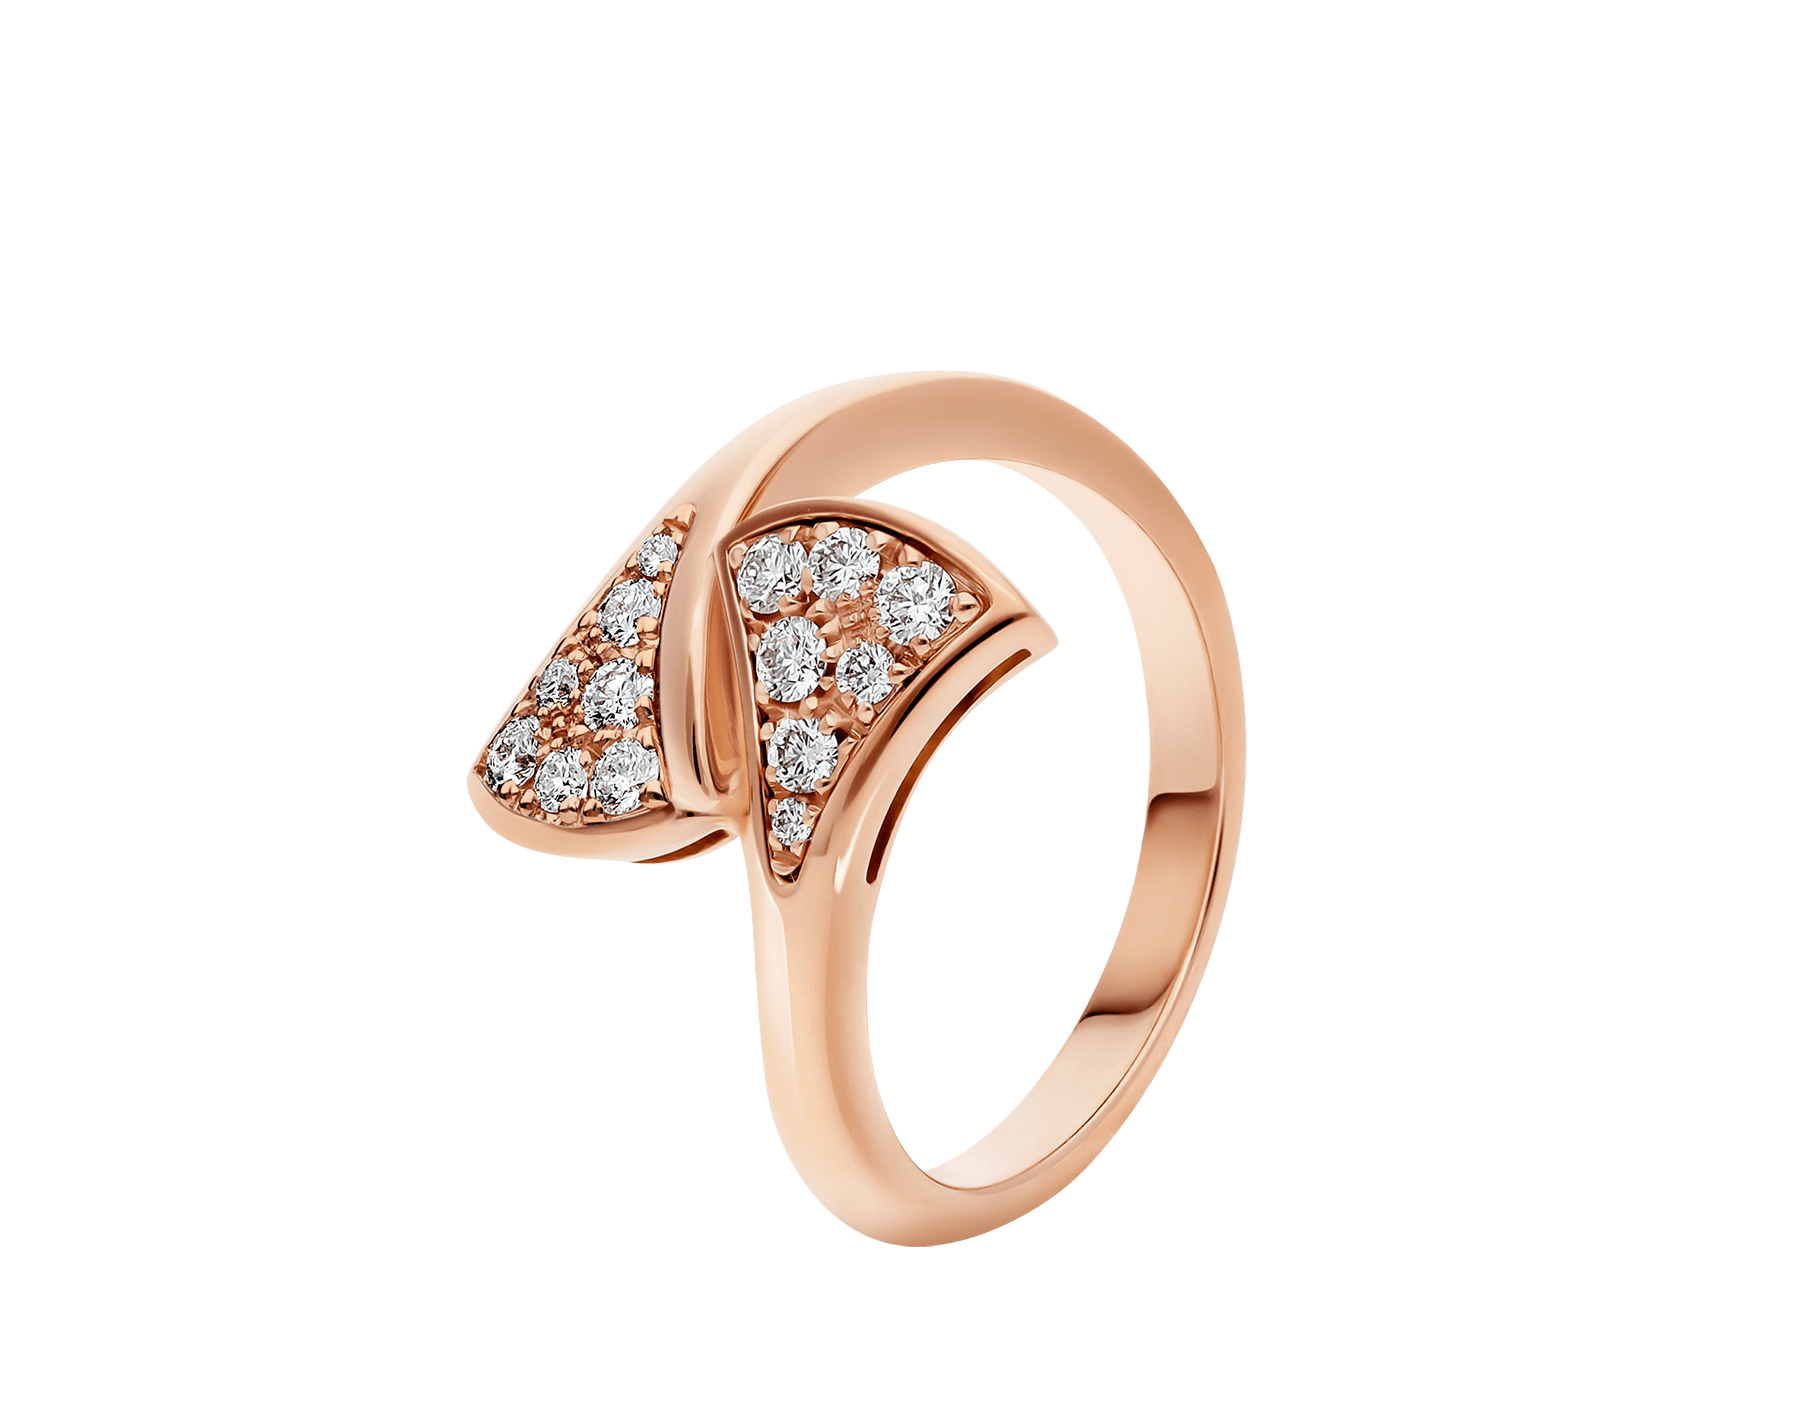 DIVAS' DREAM 18 kt rose gold ring set with pavé diamonds (0.20 ct) AN858647 image 1